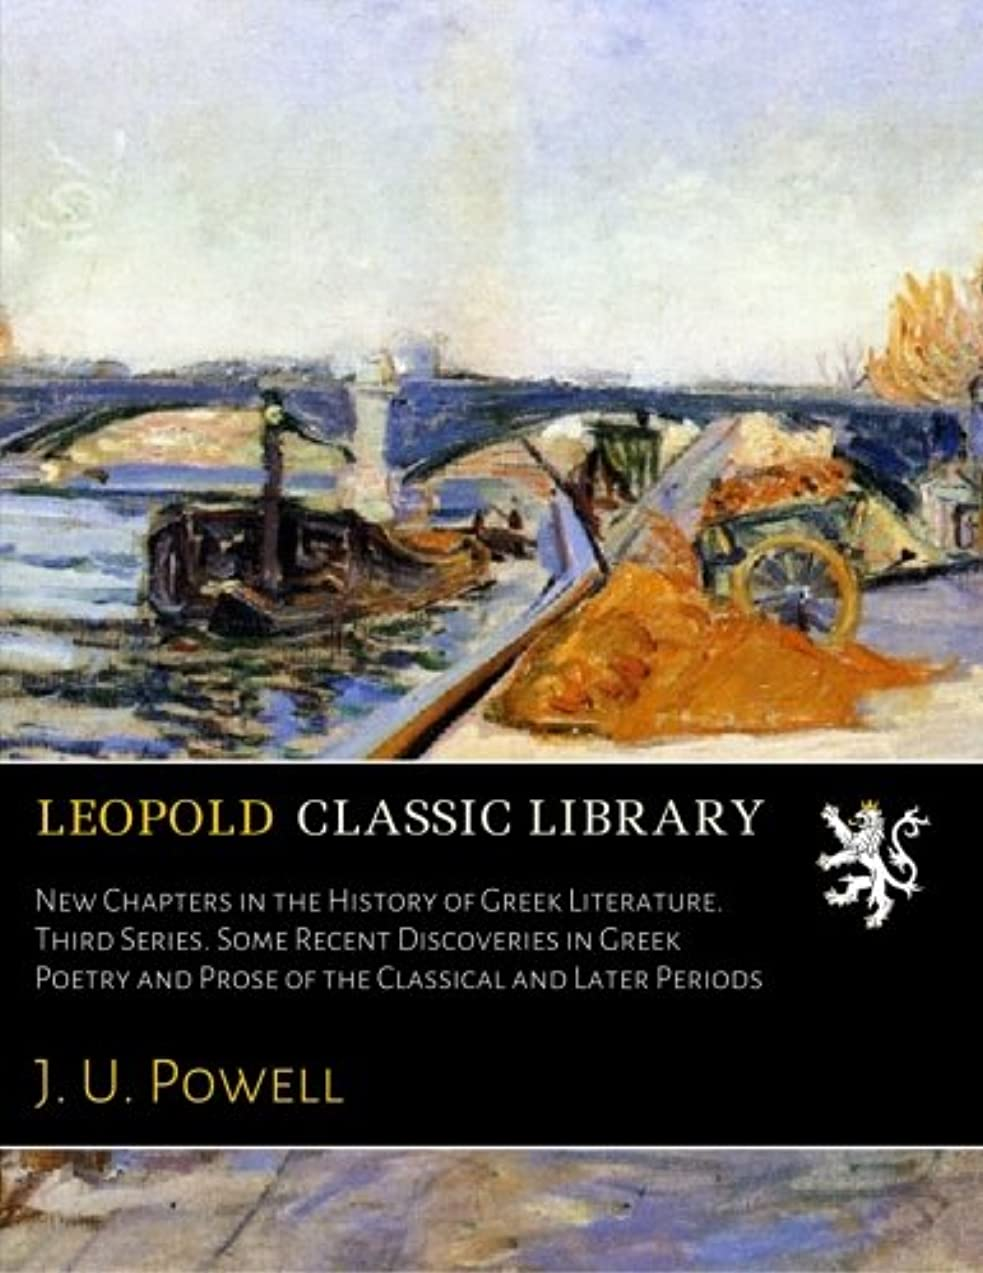 New Chapters in the History of Greek Literature. Third Series. Some Recent Discoveries in Greek Poetry and Prose of the Classical and Later Periods